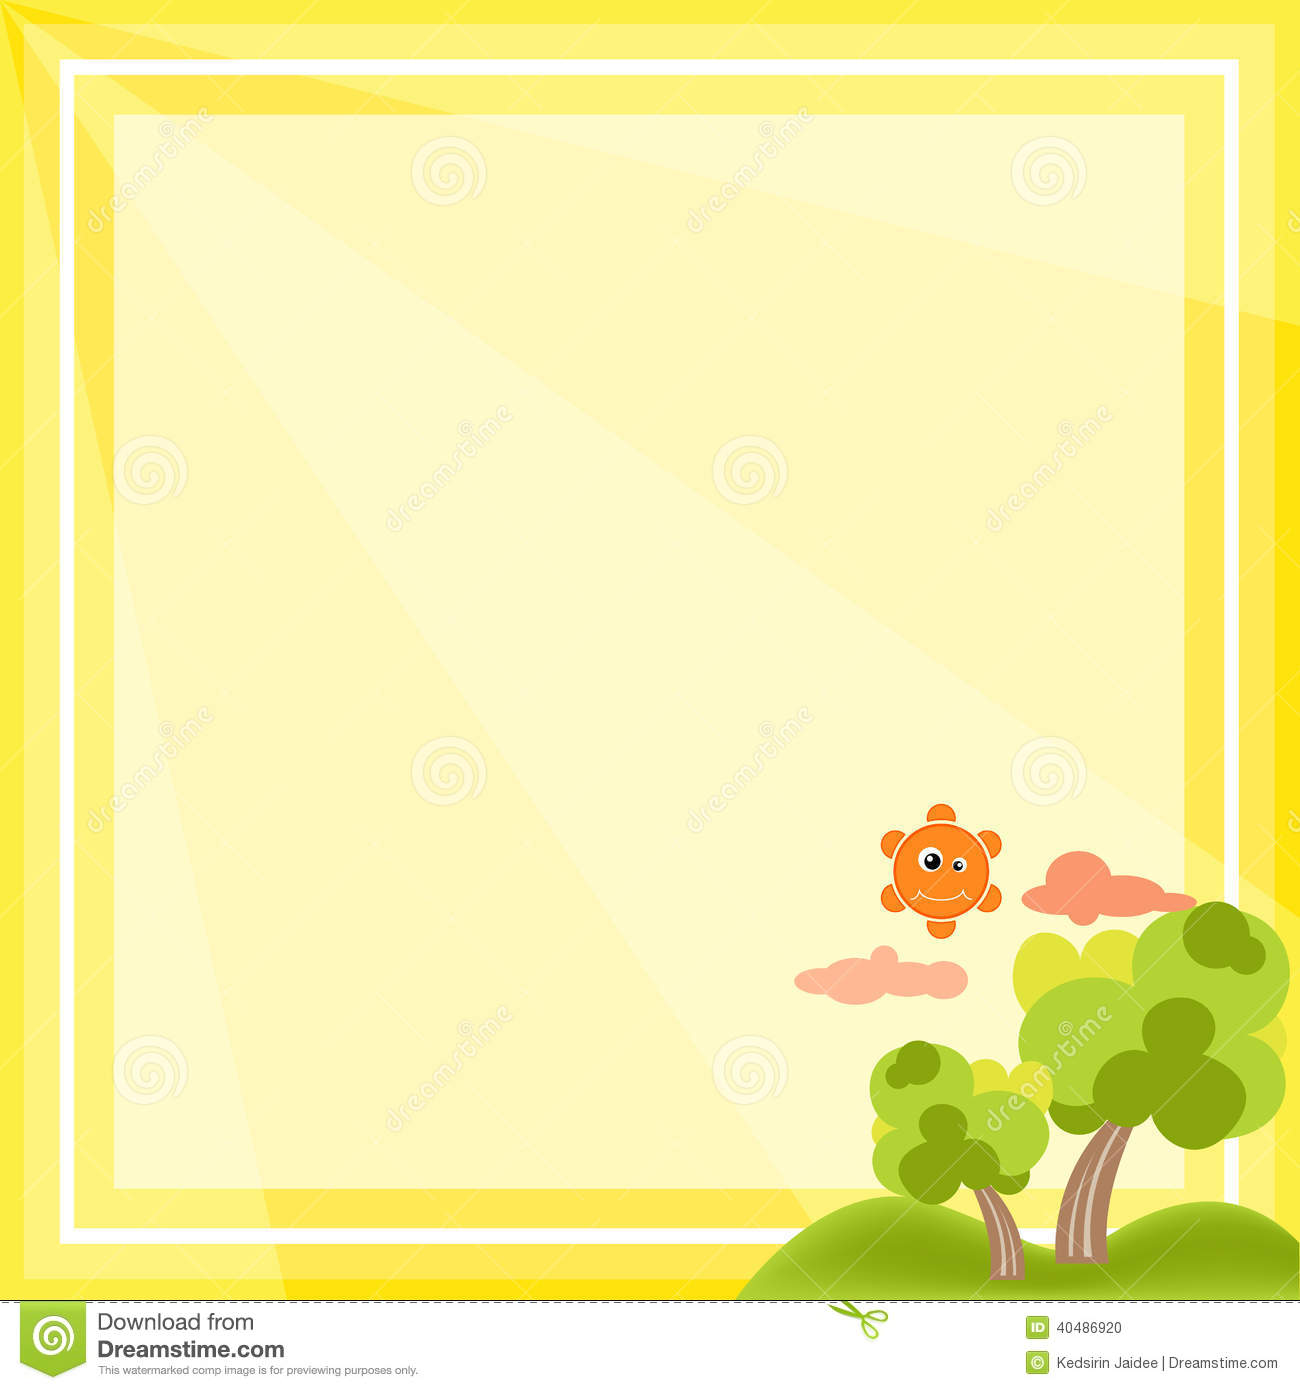 Cat In Fall Wallpaper Natural Frame Cartoon Vector On Yellow Background Stock